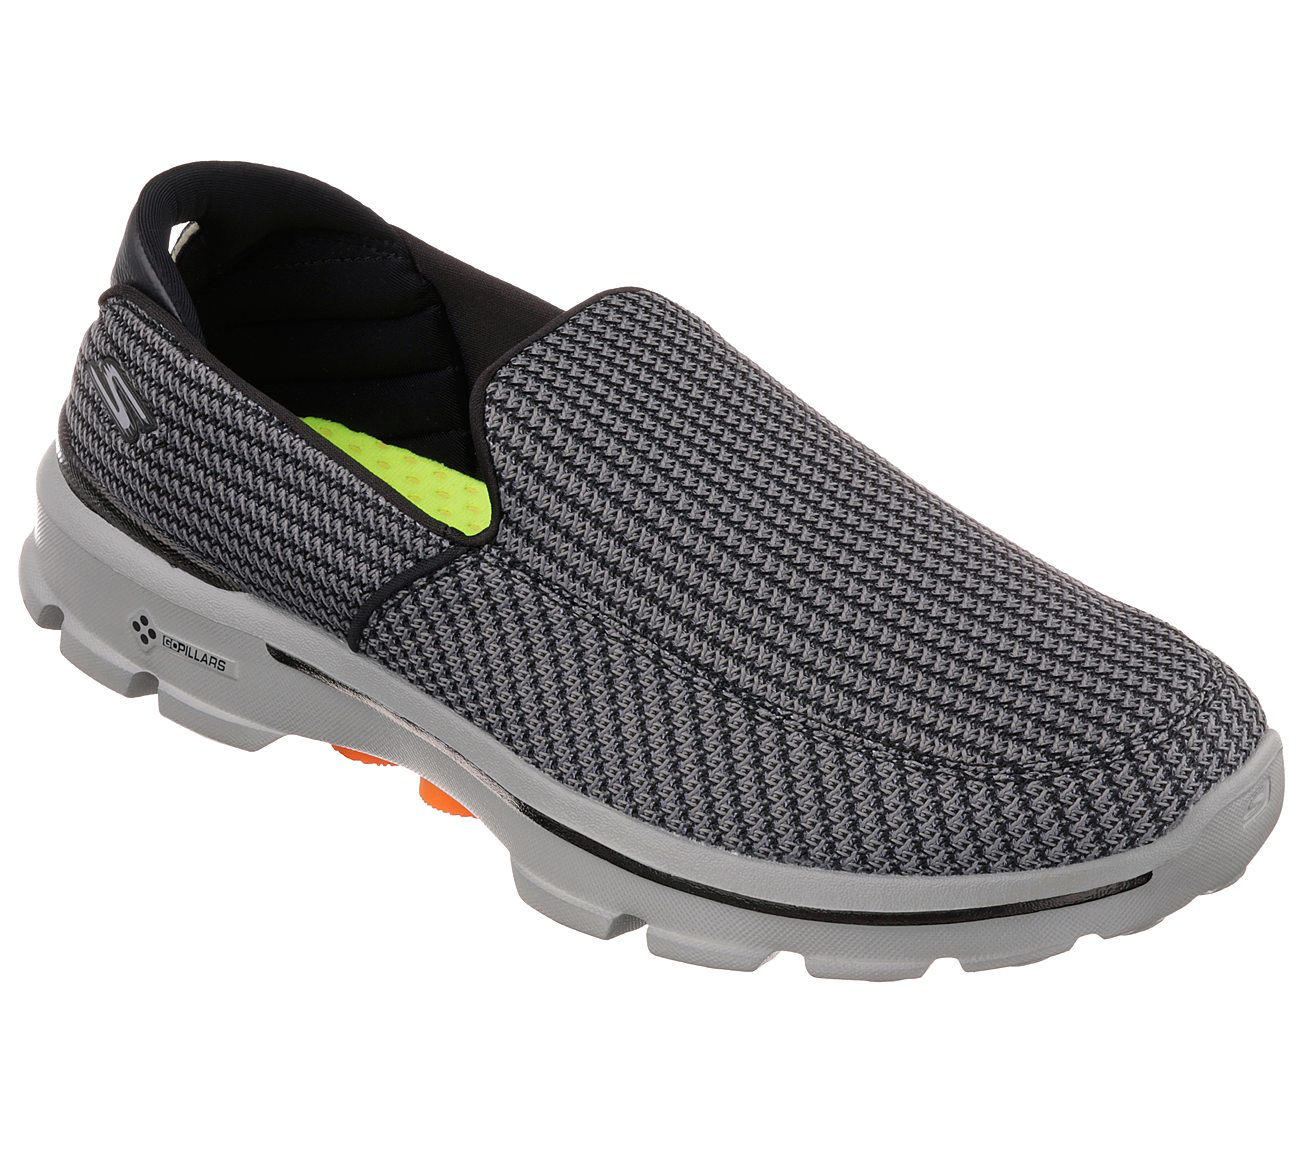 Skechers GOwalk 3. $70.00. Hover to zoom. Charcoal/Orange